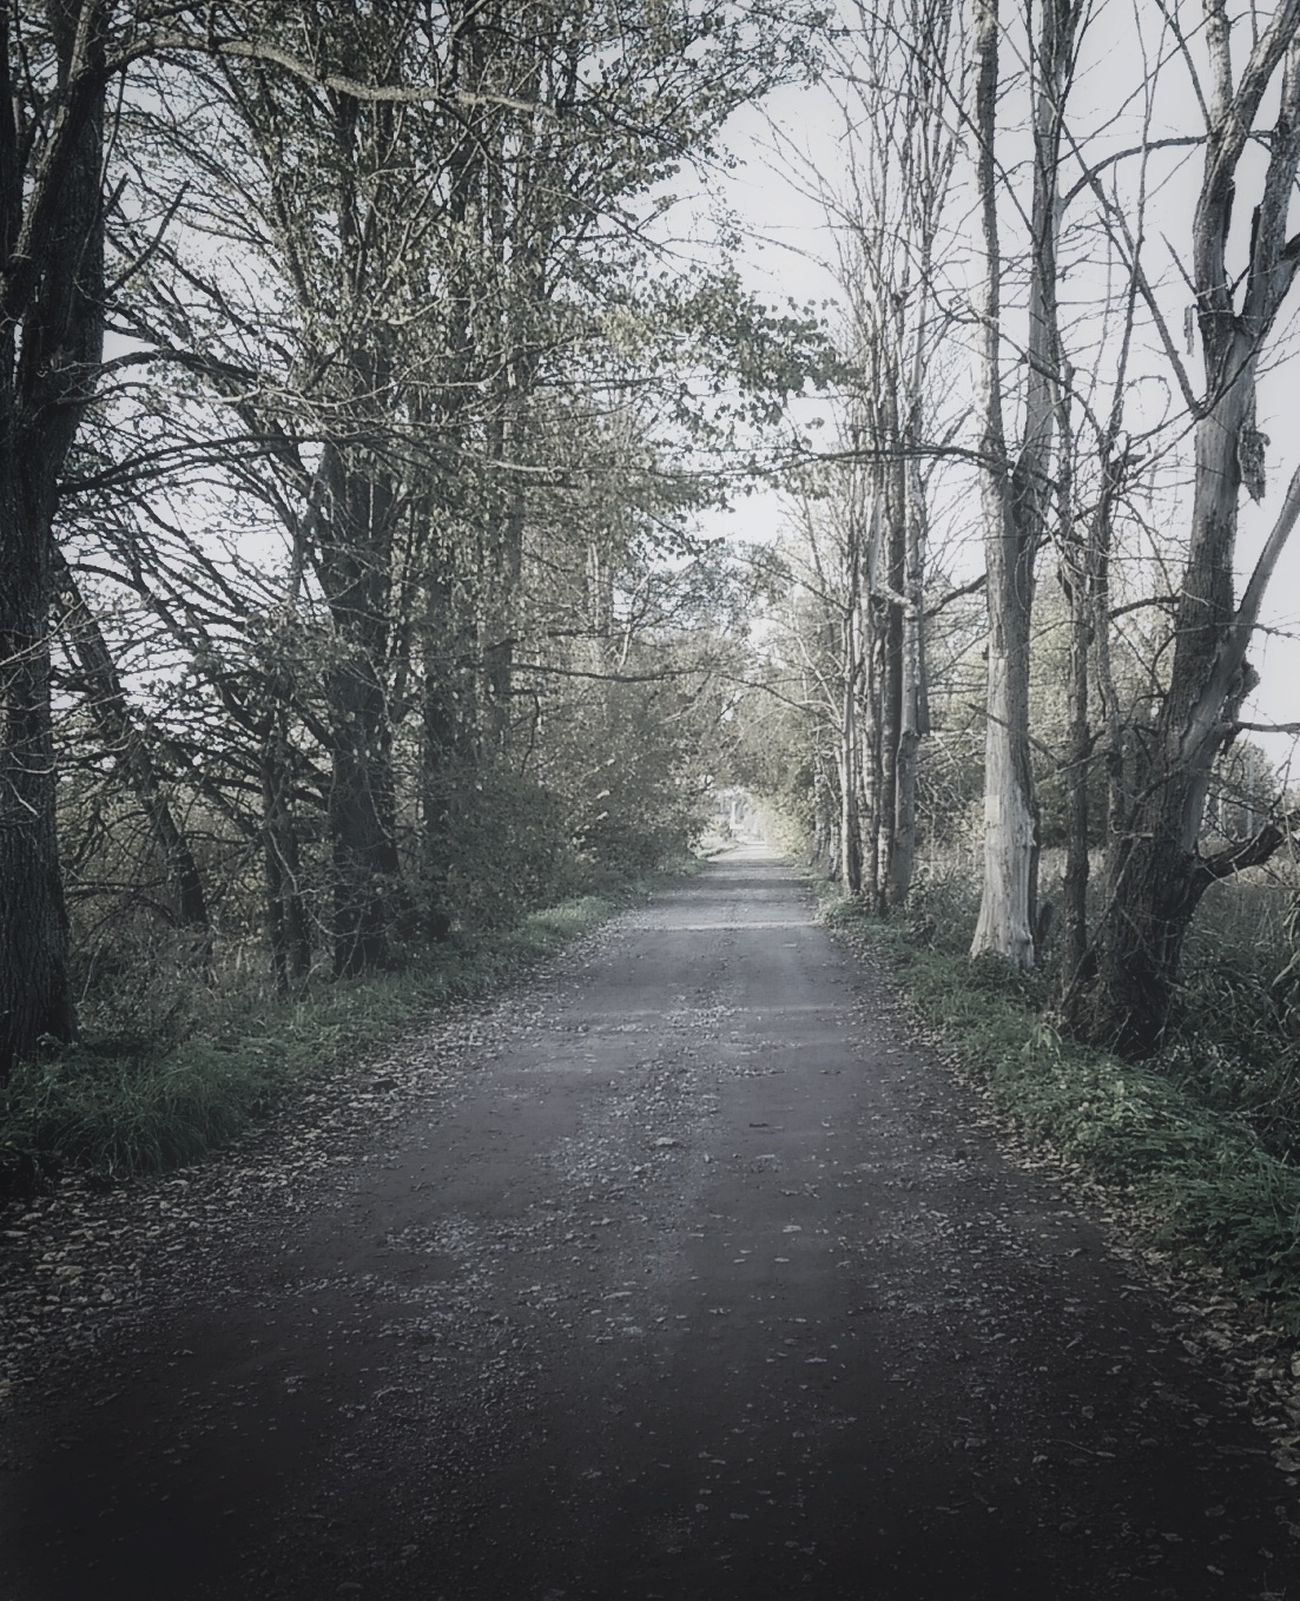 Tree Bare Tree The Way Forward Tree Trunk Tranquil Scene Forest Tranquility Diminishing Perspective Non-urban Scene Scenics Nature Long Day Vanishing Point Beauty In Nature Solitude Growth WoodLand Treelined